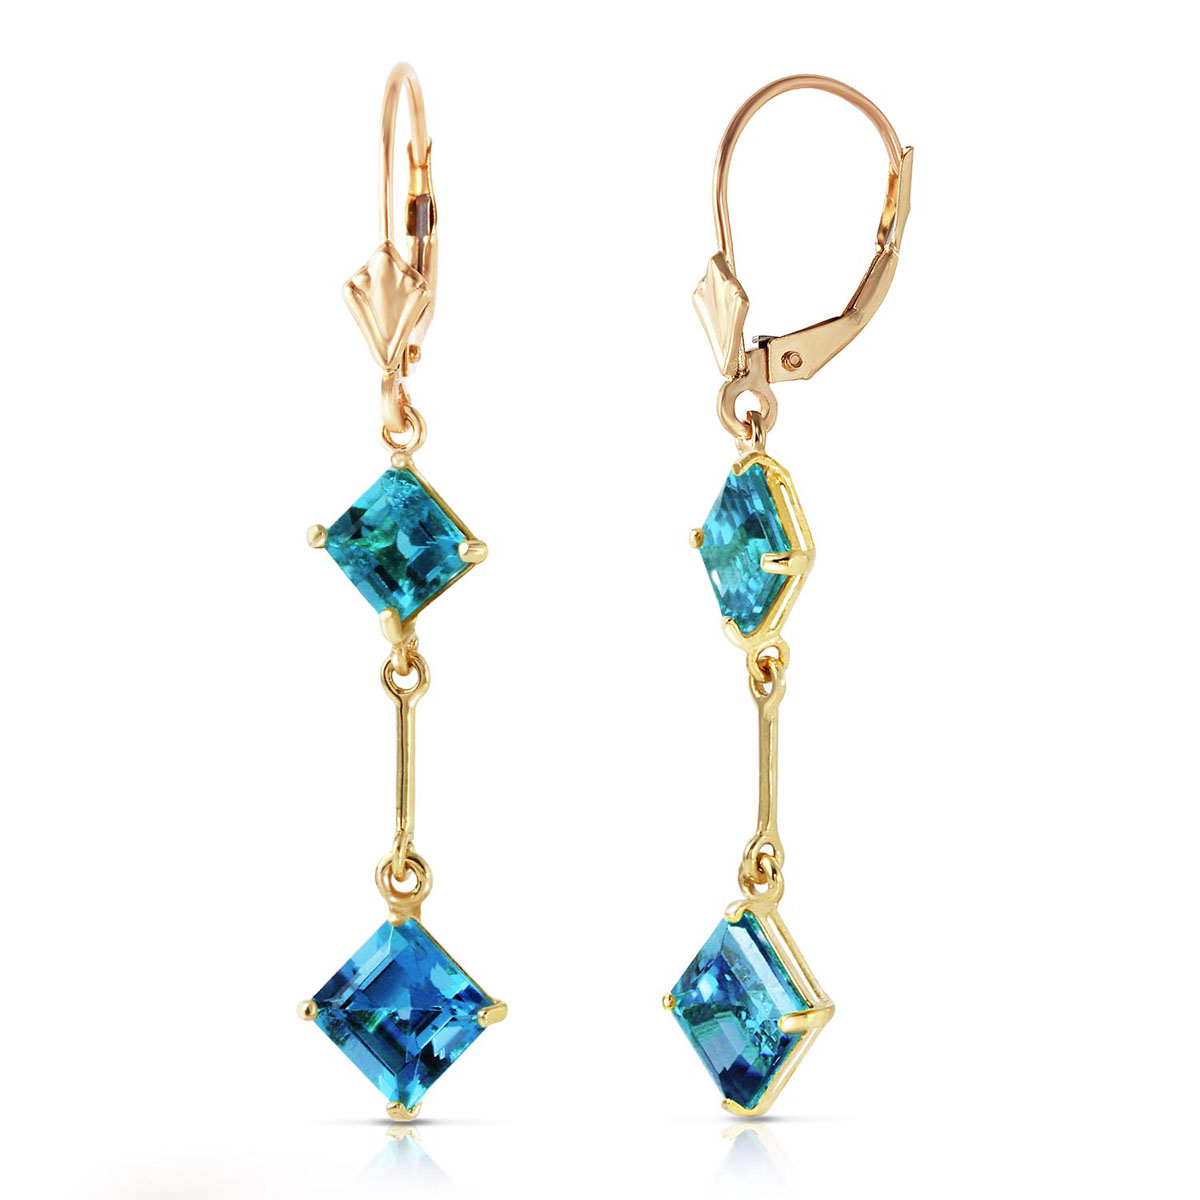 Blue Topaz Two Tier Drop Earrings 3.75 ctw in 9ct Gold